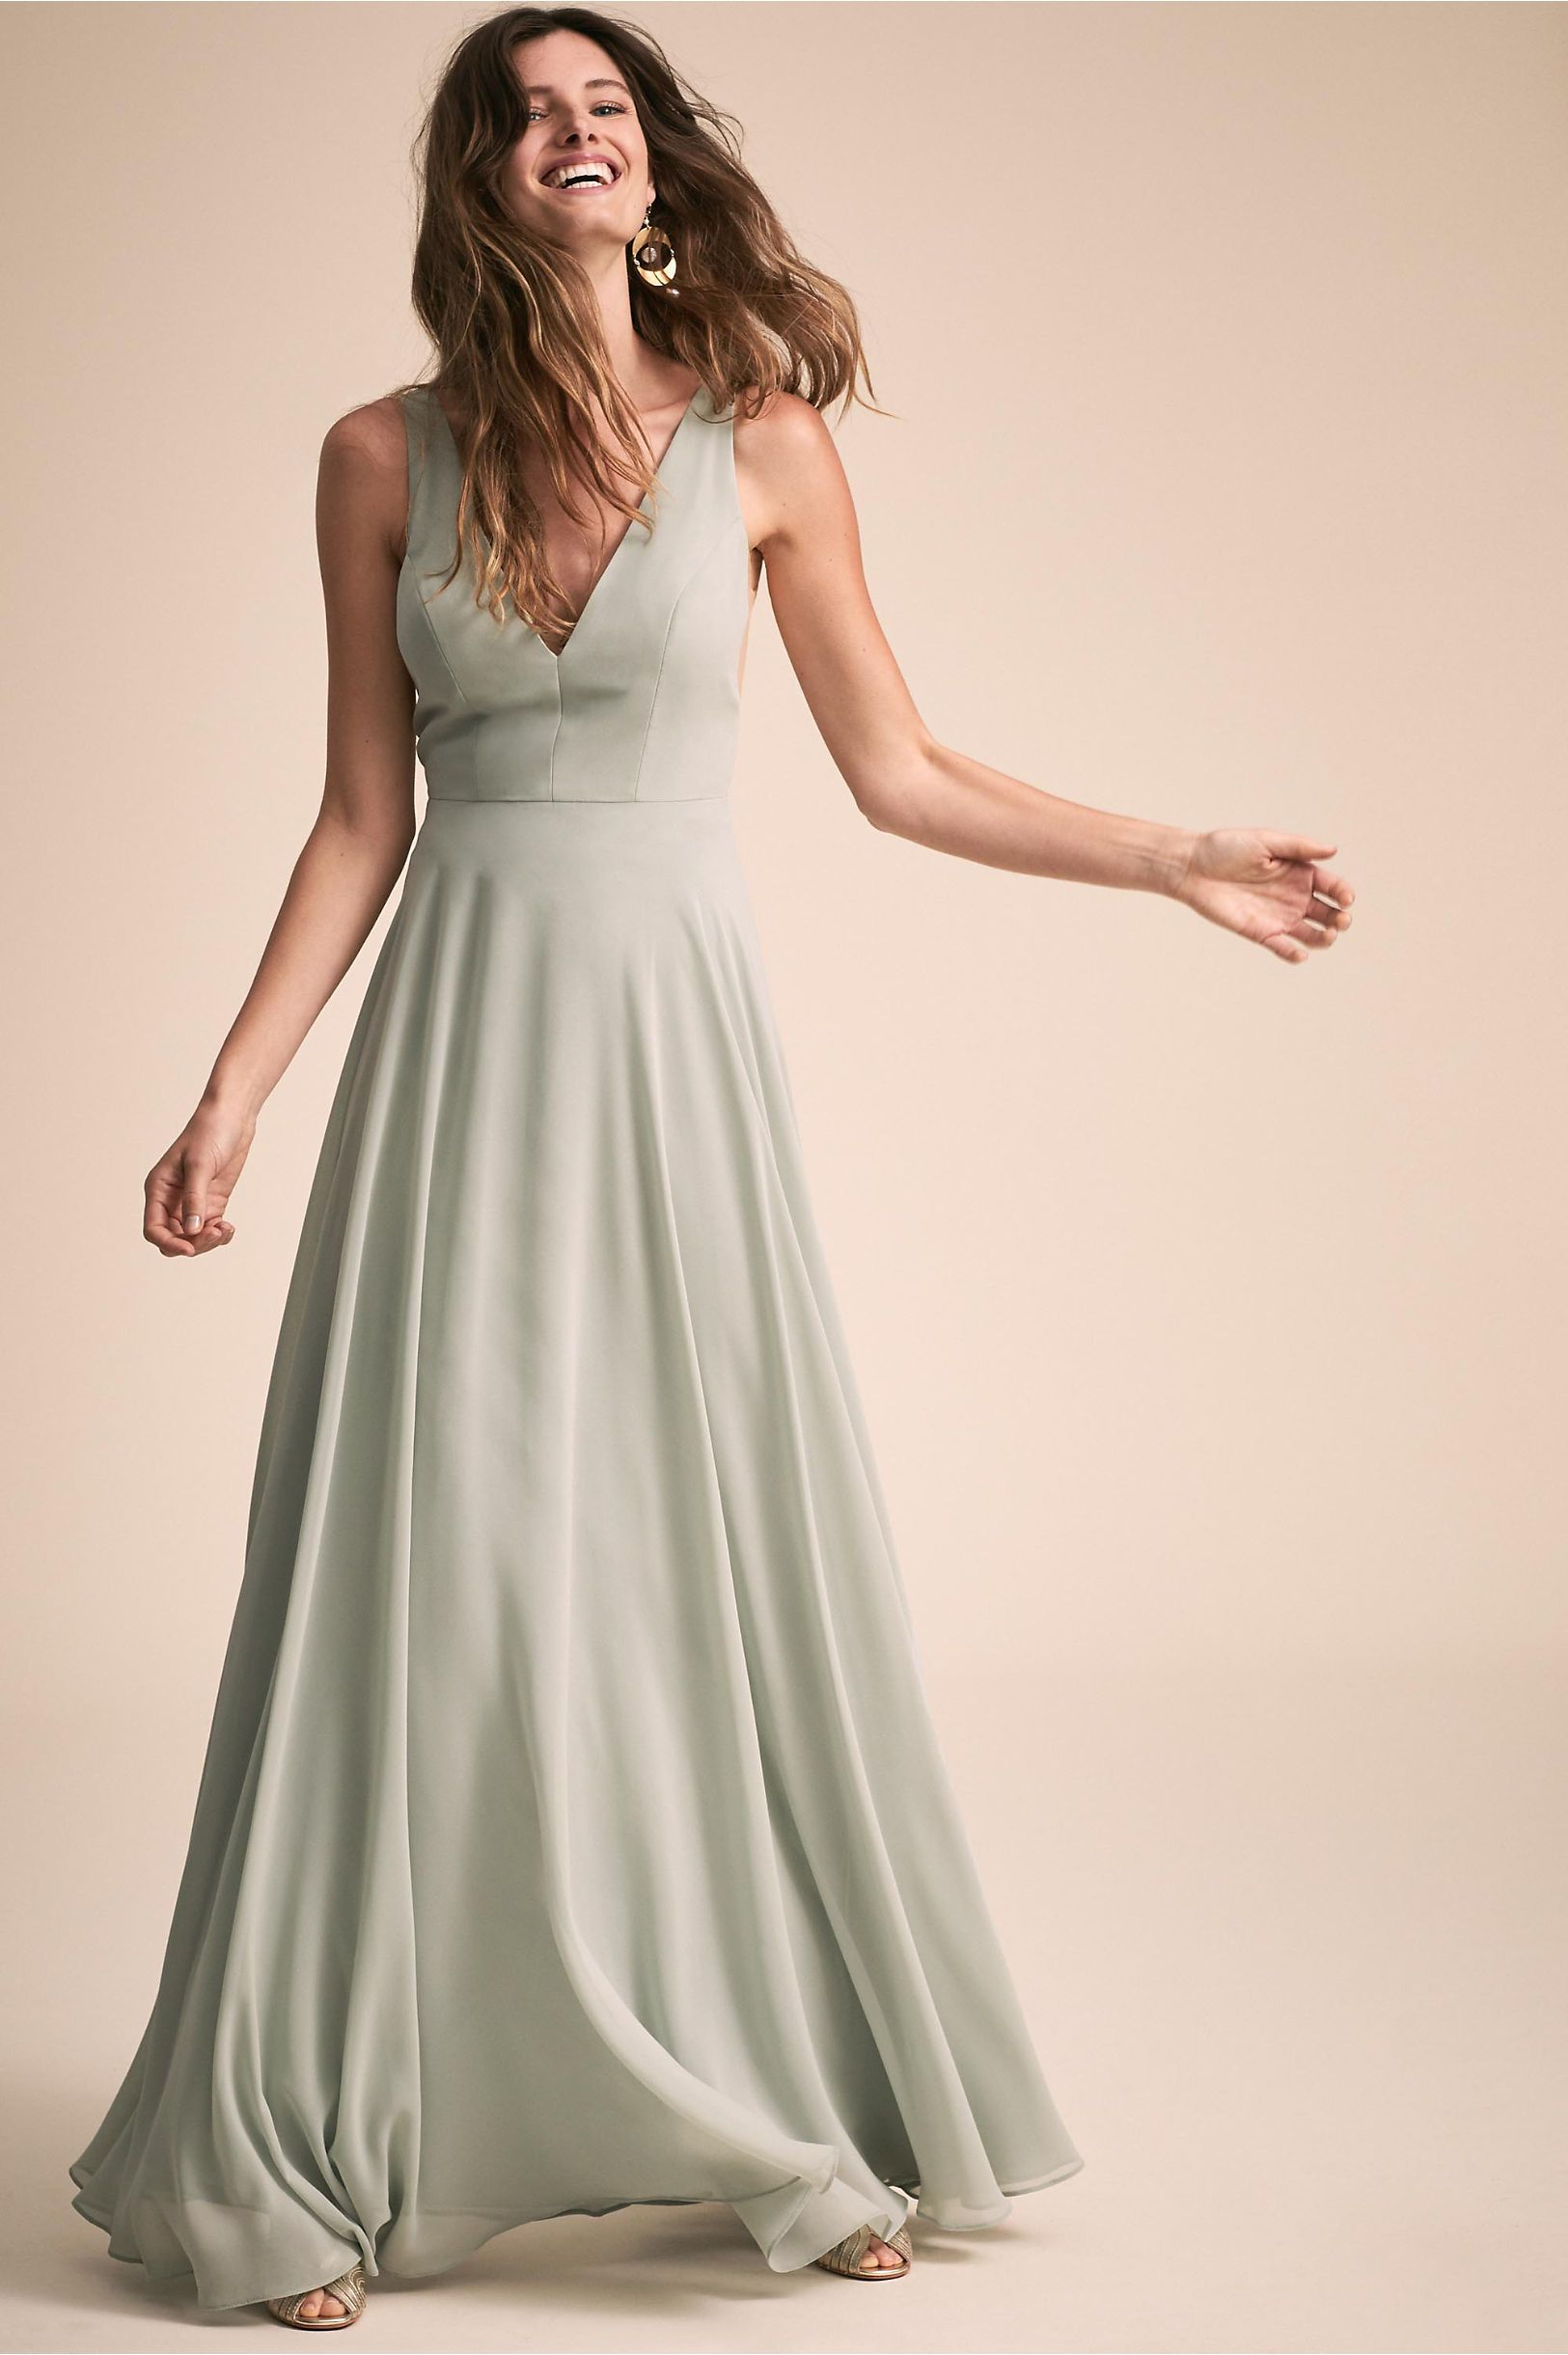 1c67b697353 BHLDN s Jenny Yoo Colby Dress in Morning Mist. BHLDN s Jenny Yoo Colby Dress  in Morning Mist Wedding Dresses ...